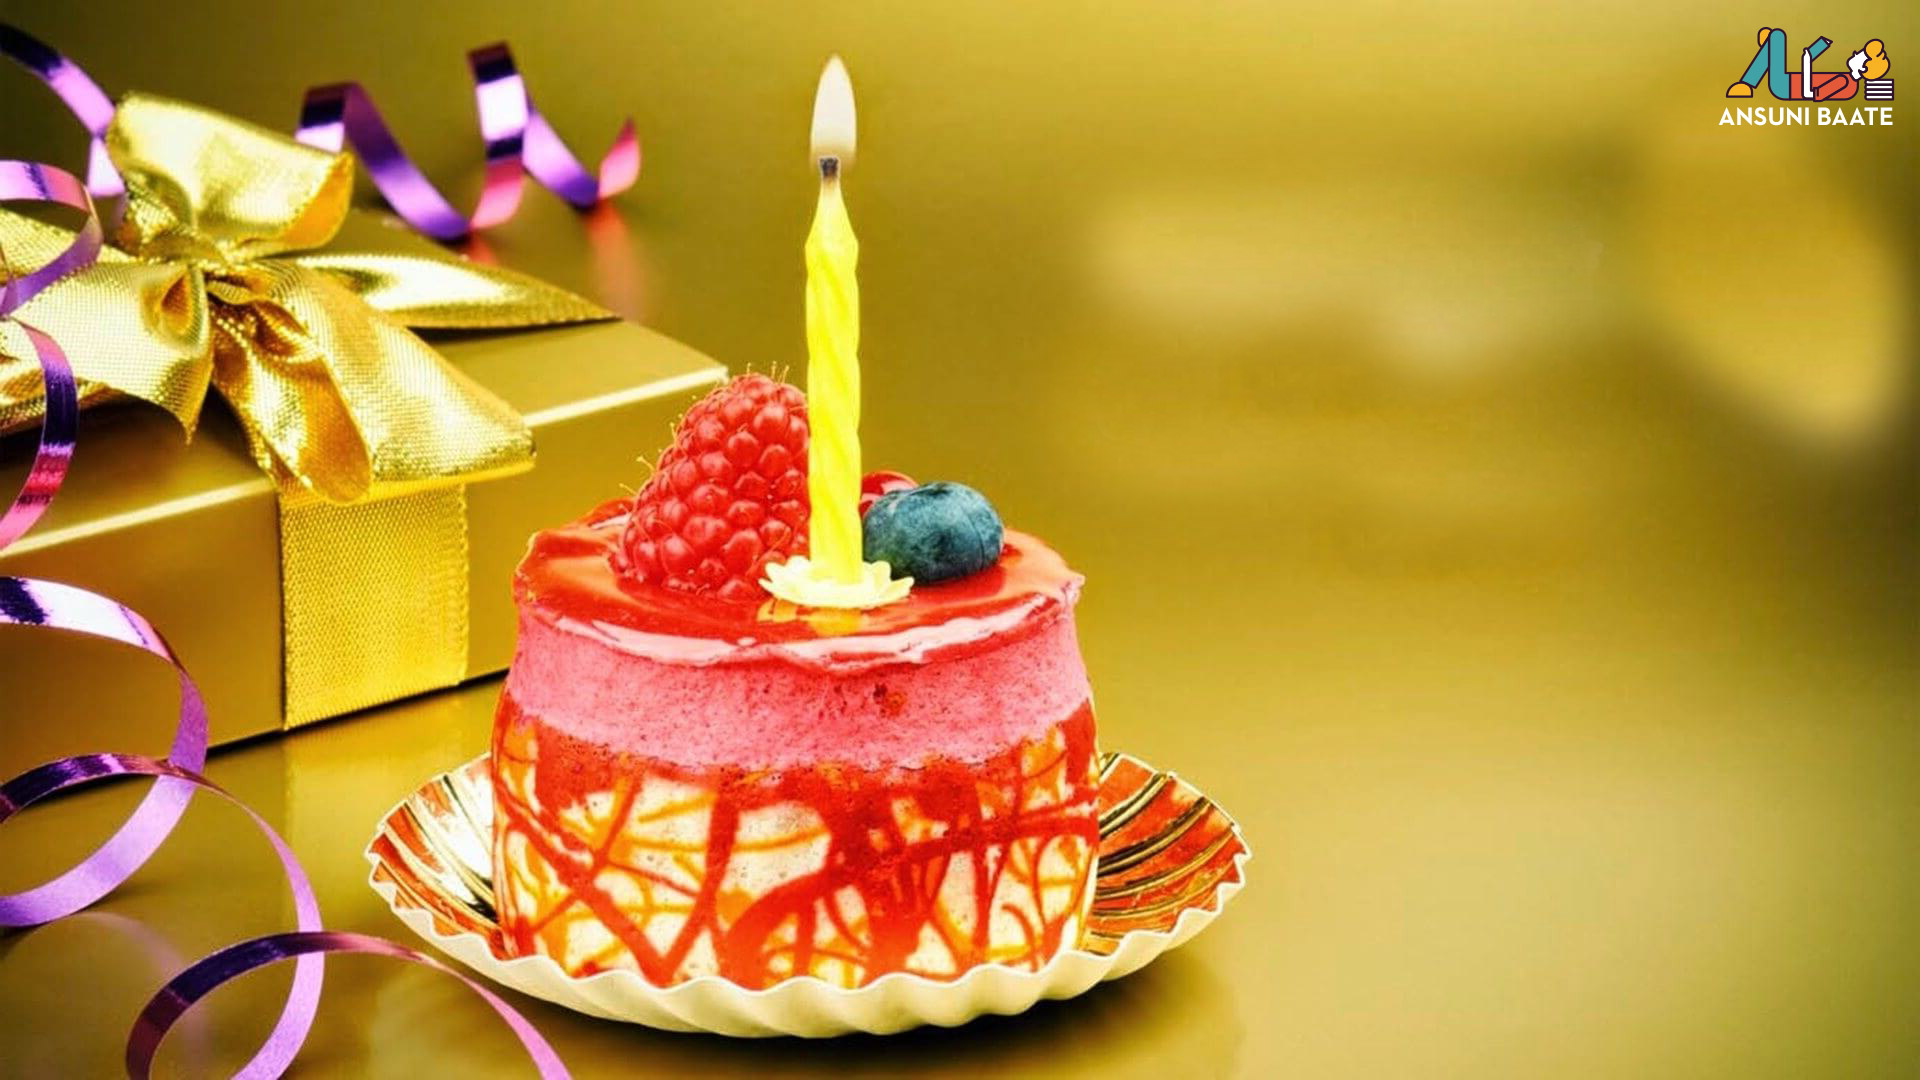 Birthday Hd Images Wallpaper Photo Pics Pictures Hd Happy Birthday Day Father 826374 Hd Wallpaper Backgrounds Download